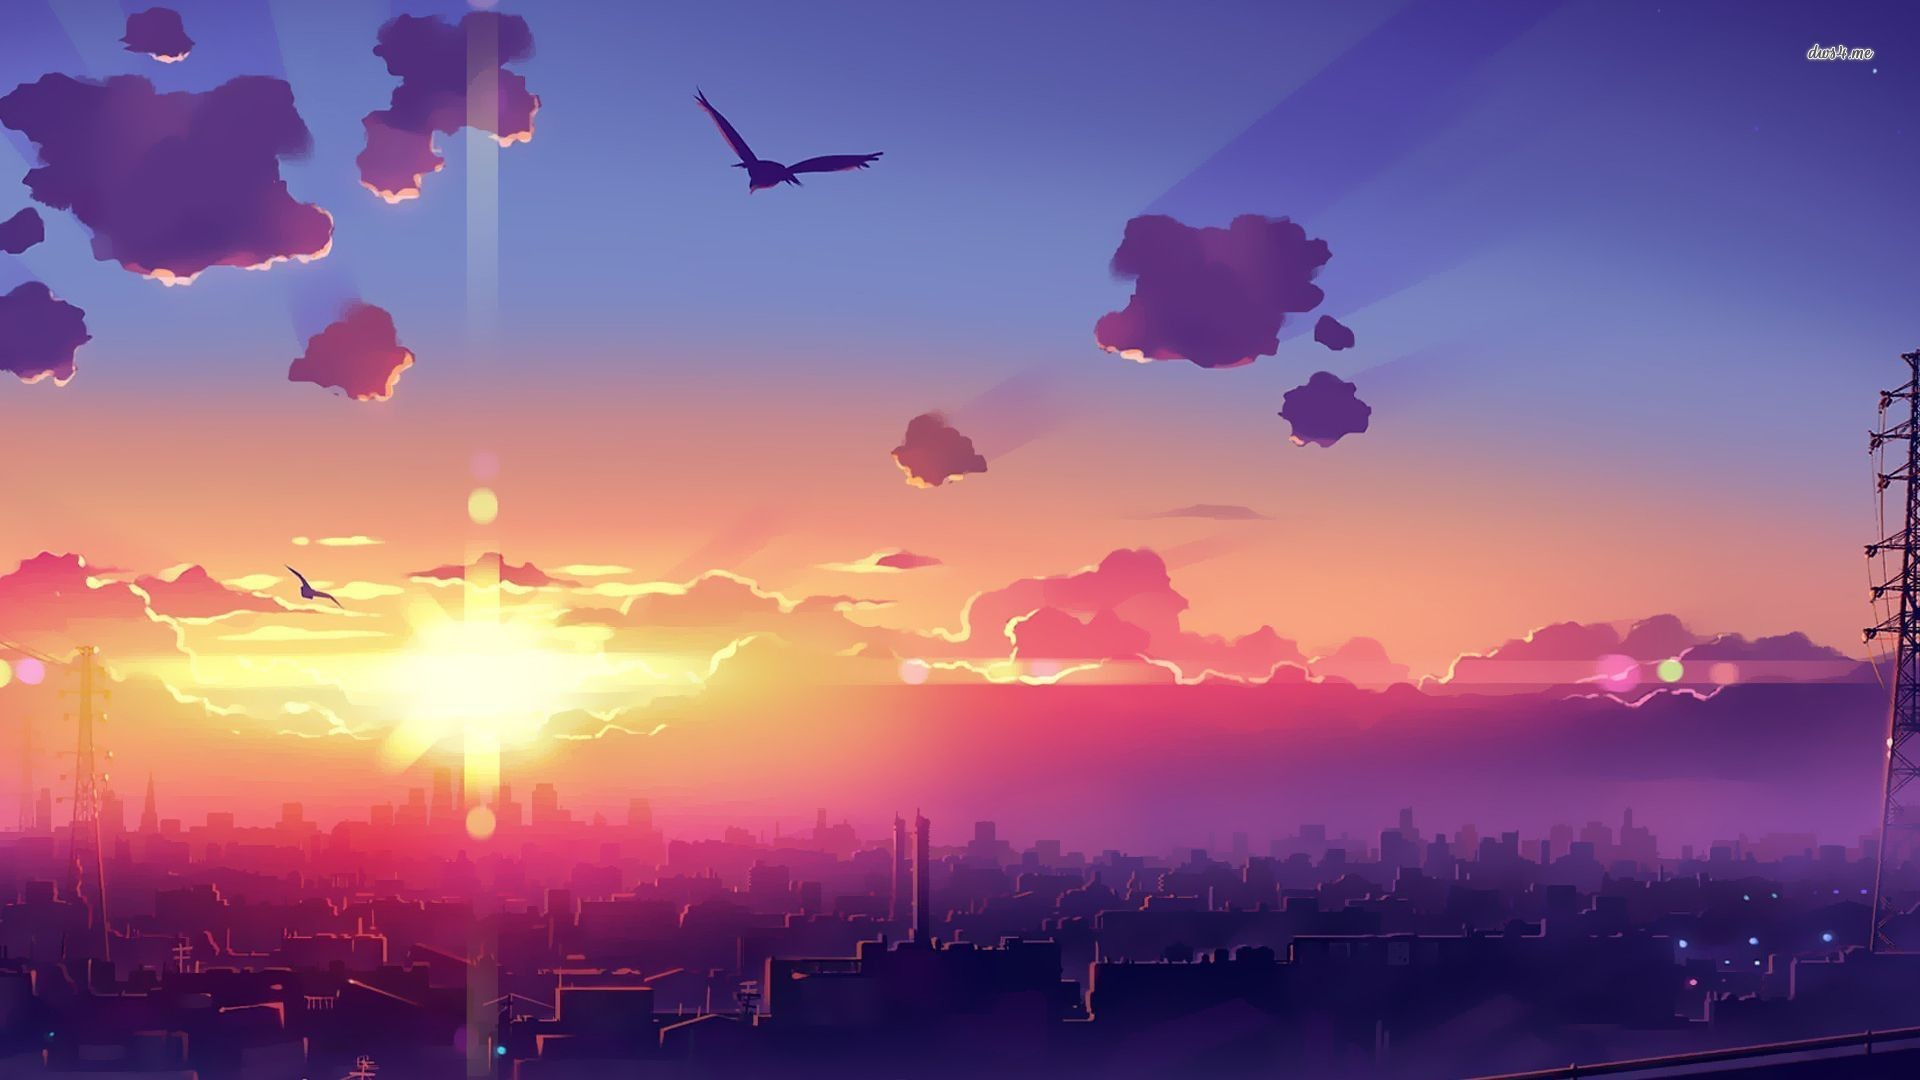 Res: 1920x1080, Amazing sunset above the city wallpaper - Anime wallpapers - #41068